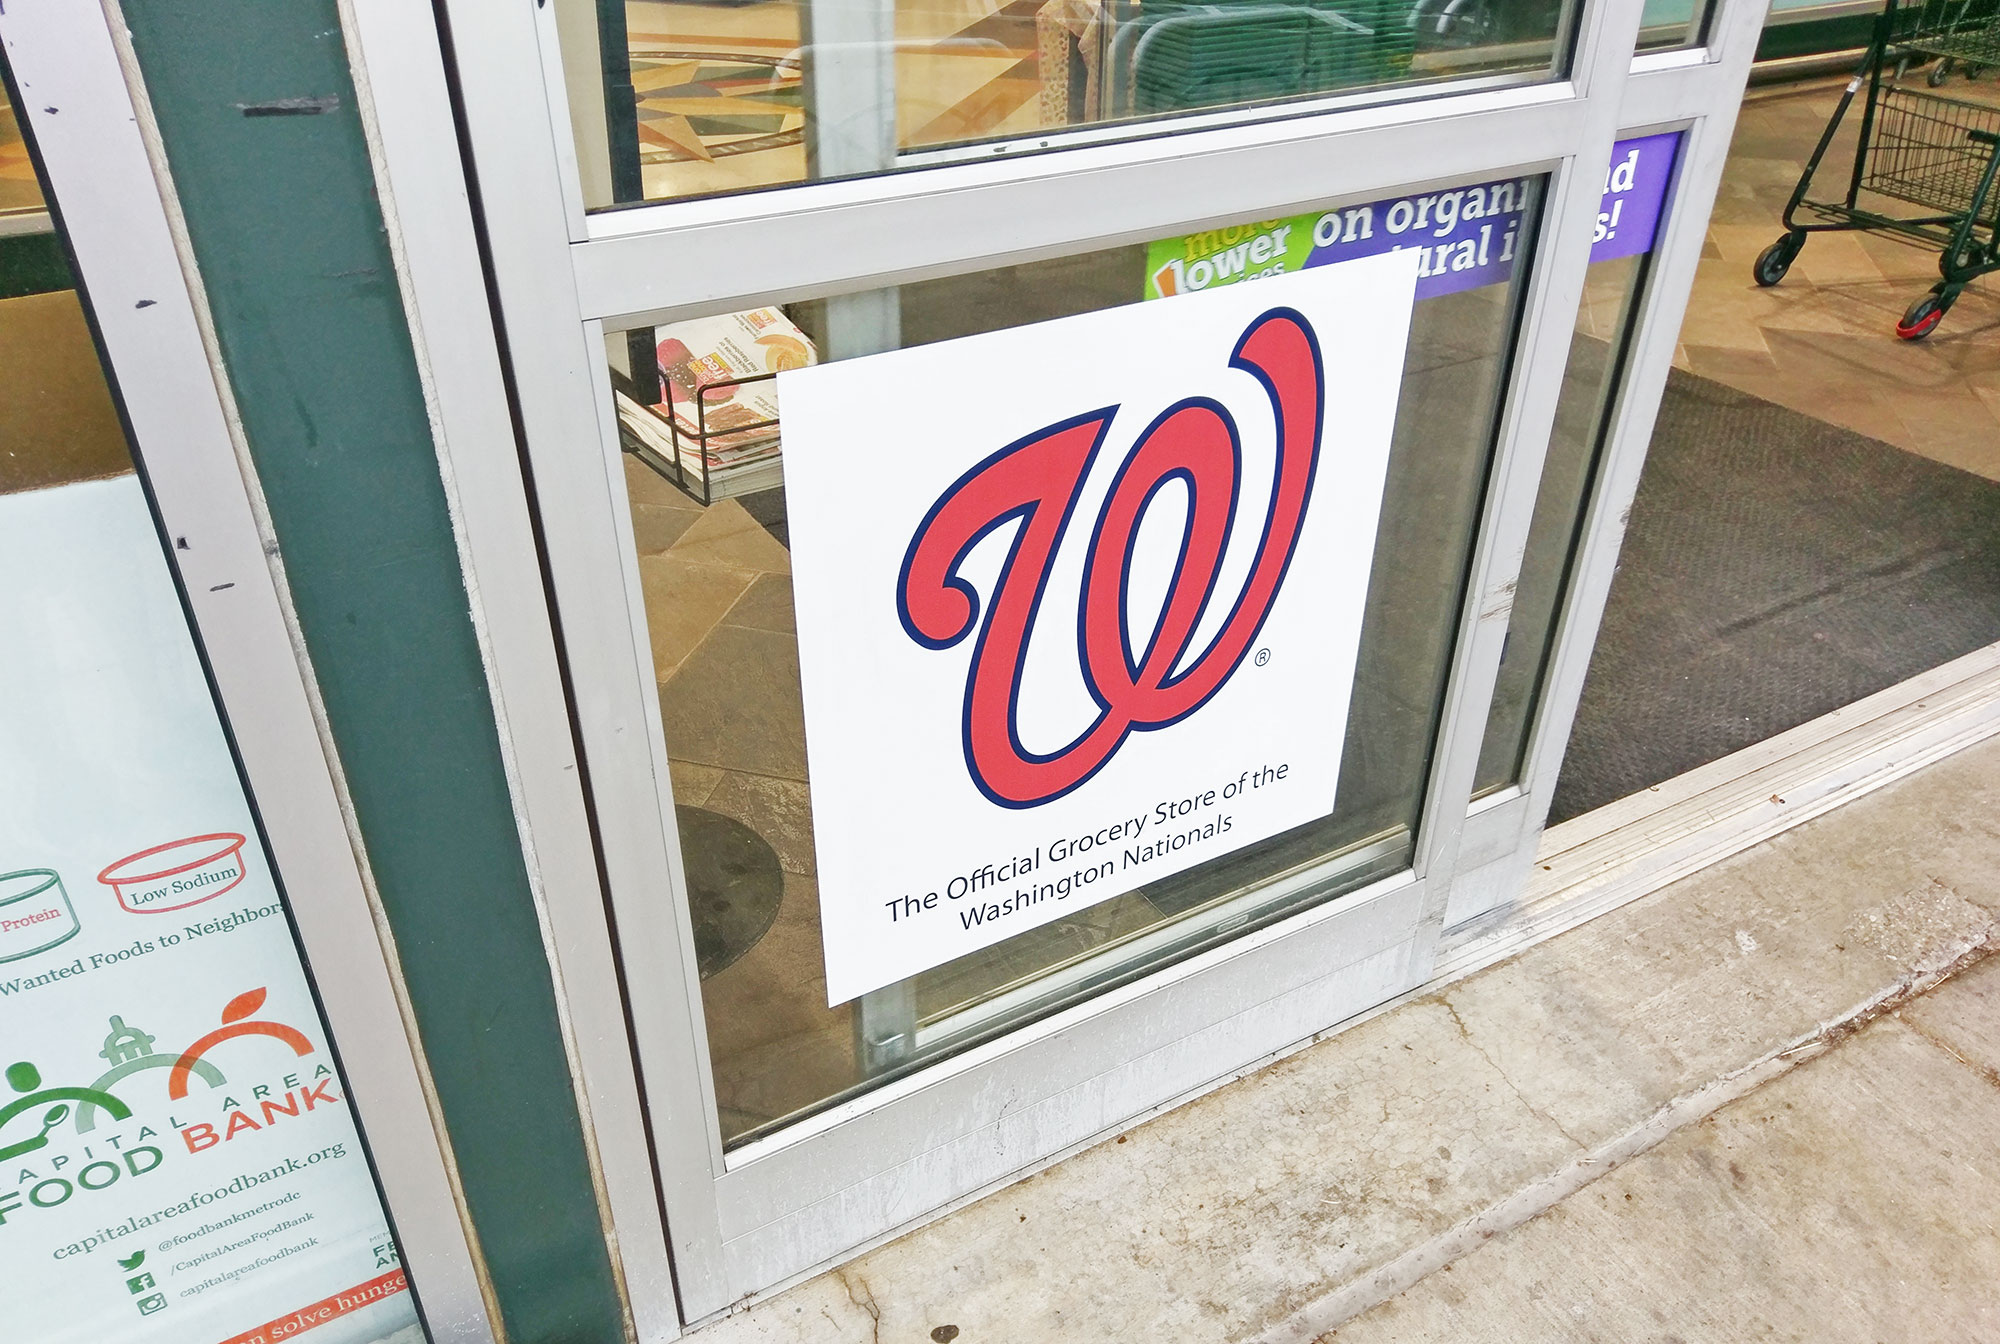 Walgreens or Nationals? Confusion on the D.C. subway..